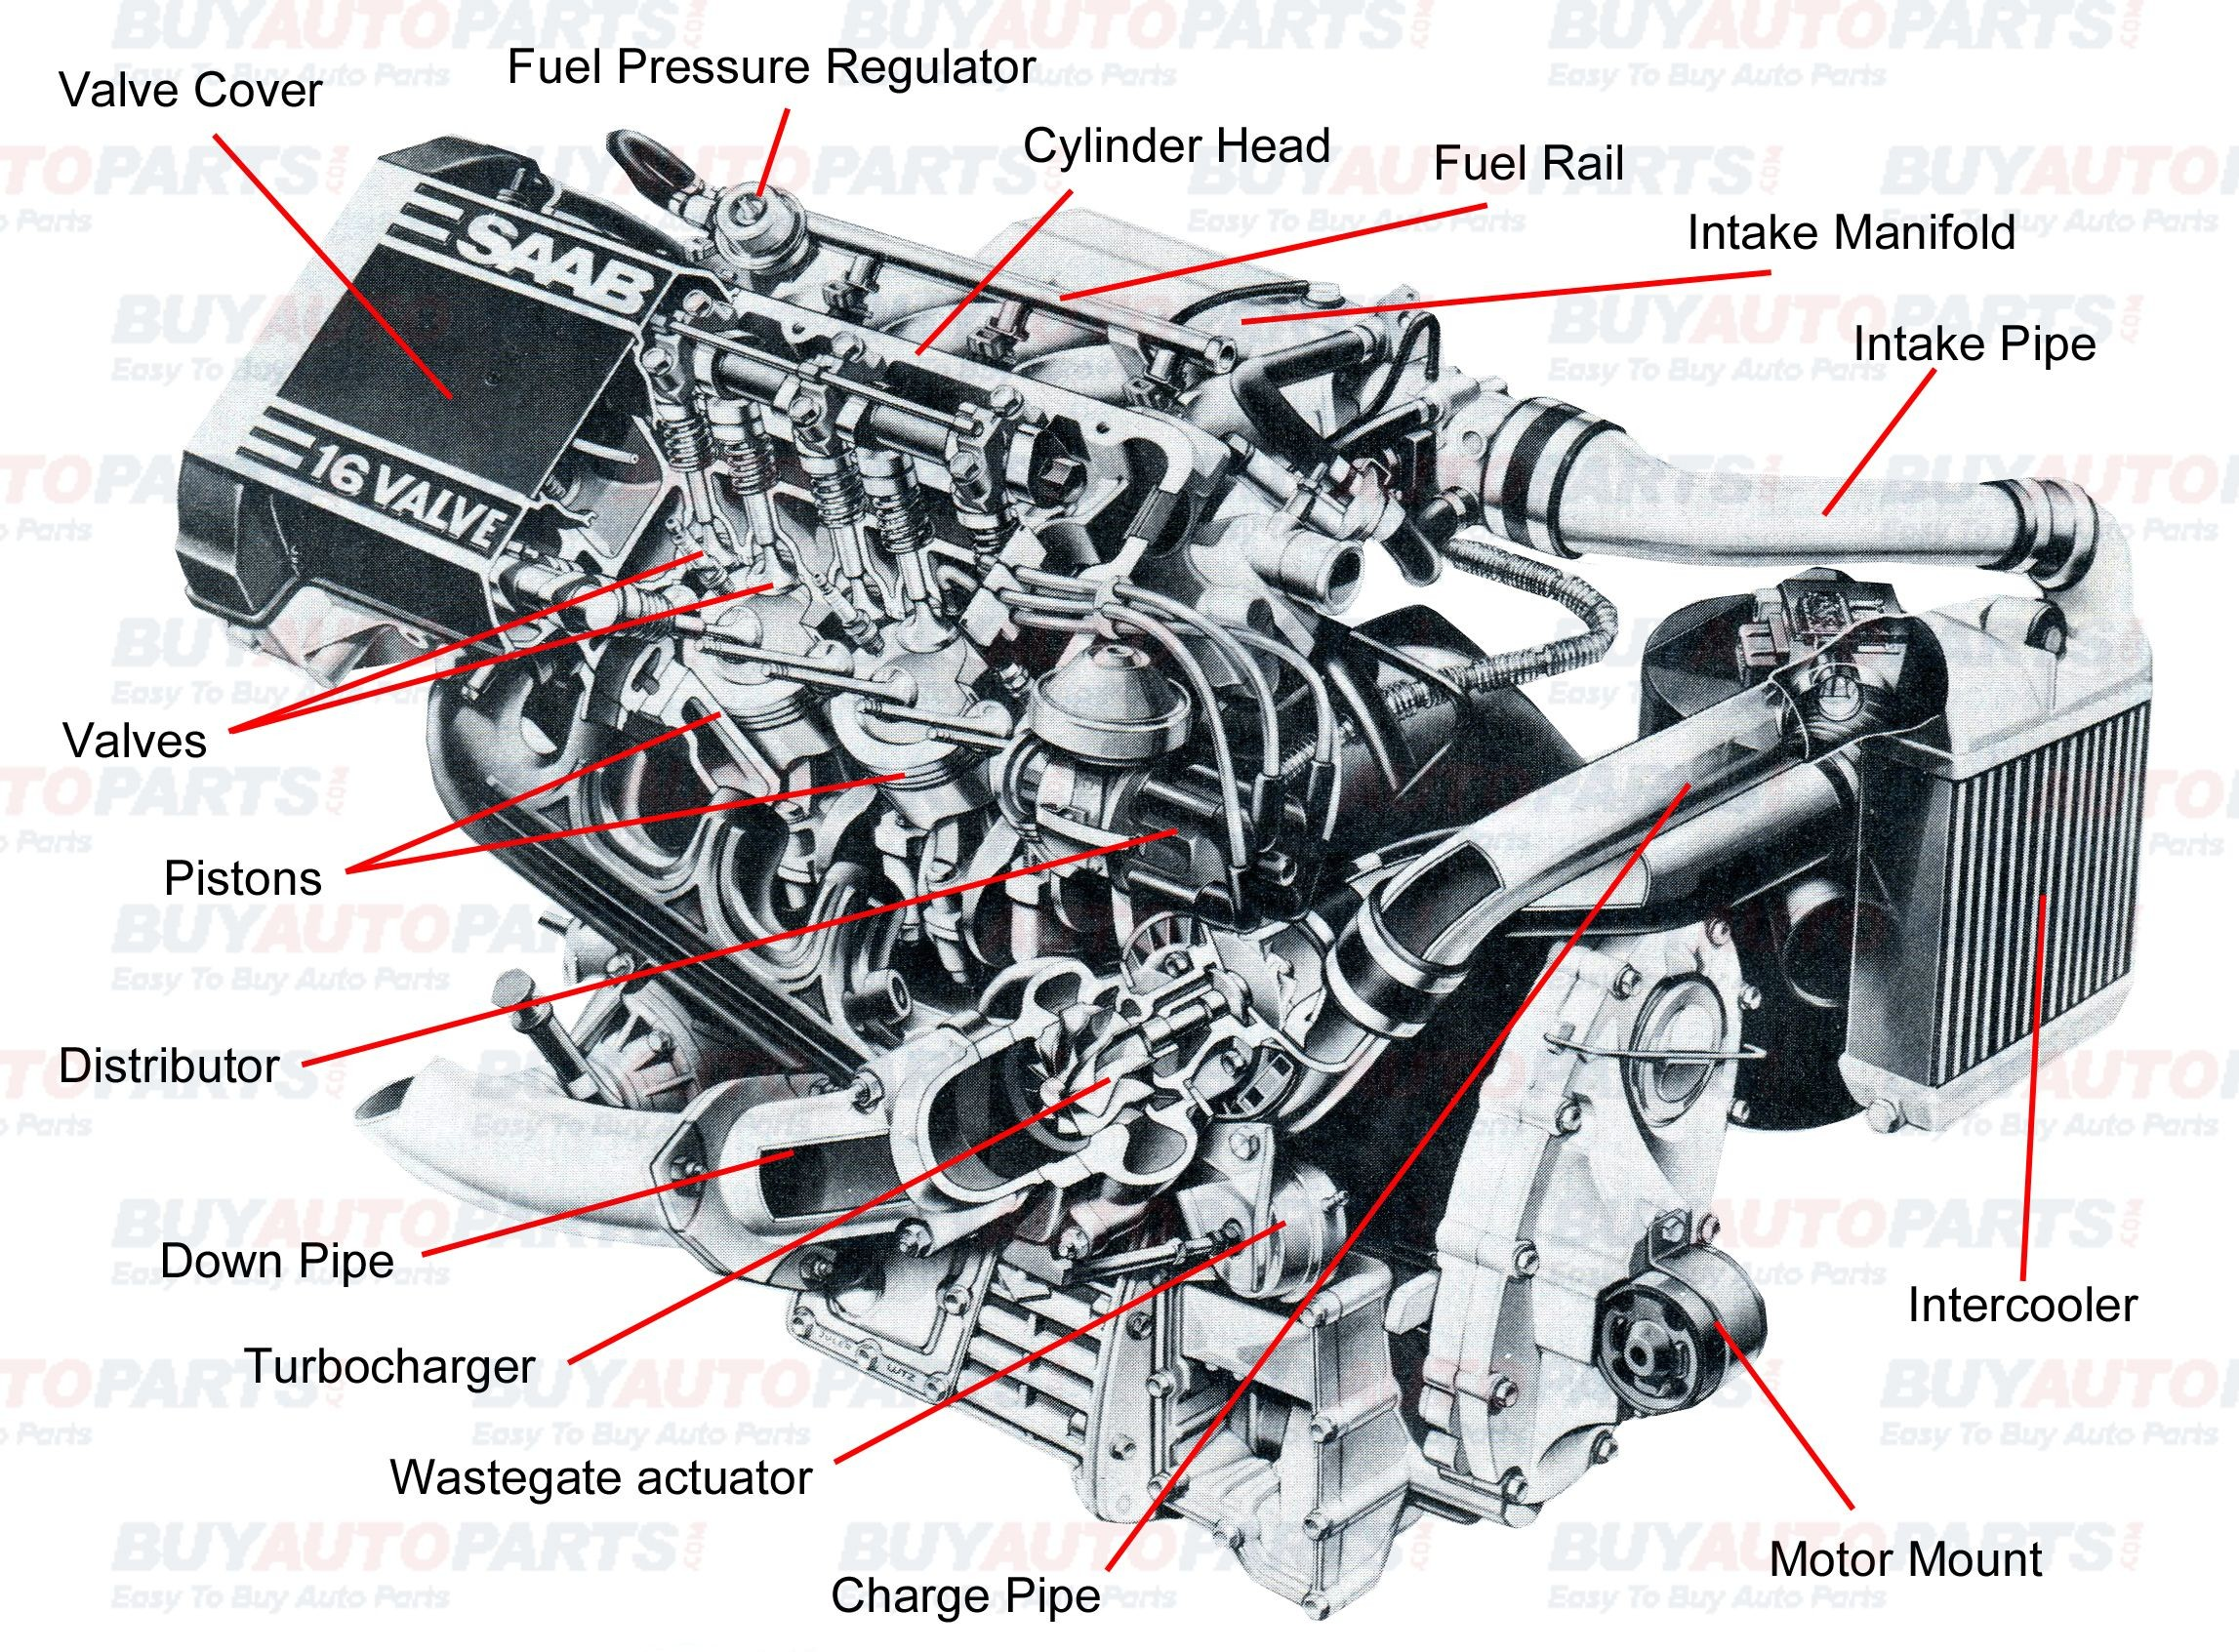 Diagram Of Internal Combustion Engine Pin by Jimmiejanet Testellamwfz On What Does An Engine with Turbo Of Diagram Of Internal Combustion Engine